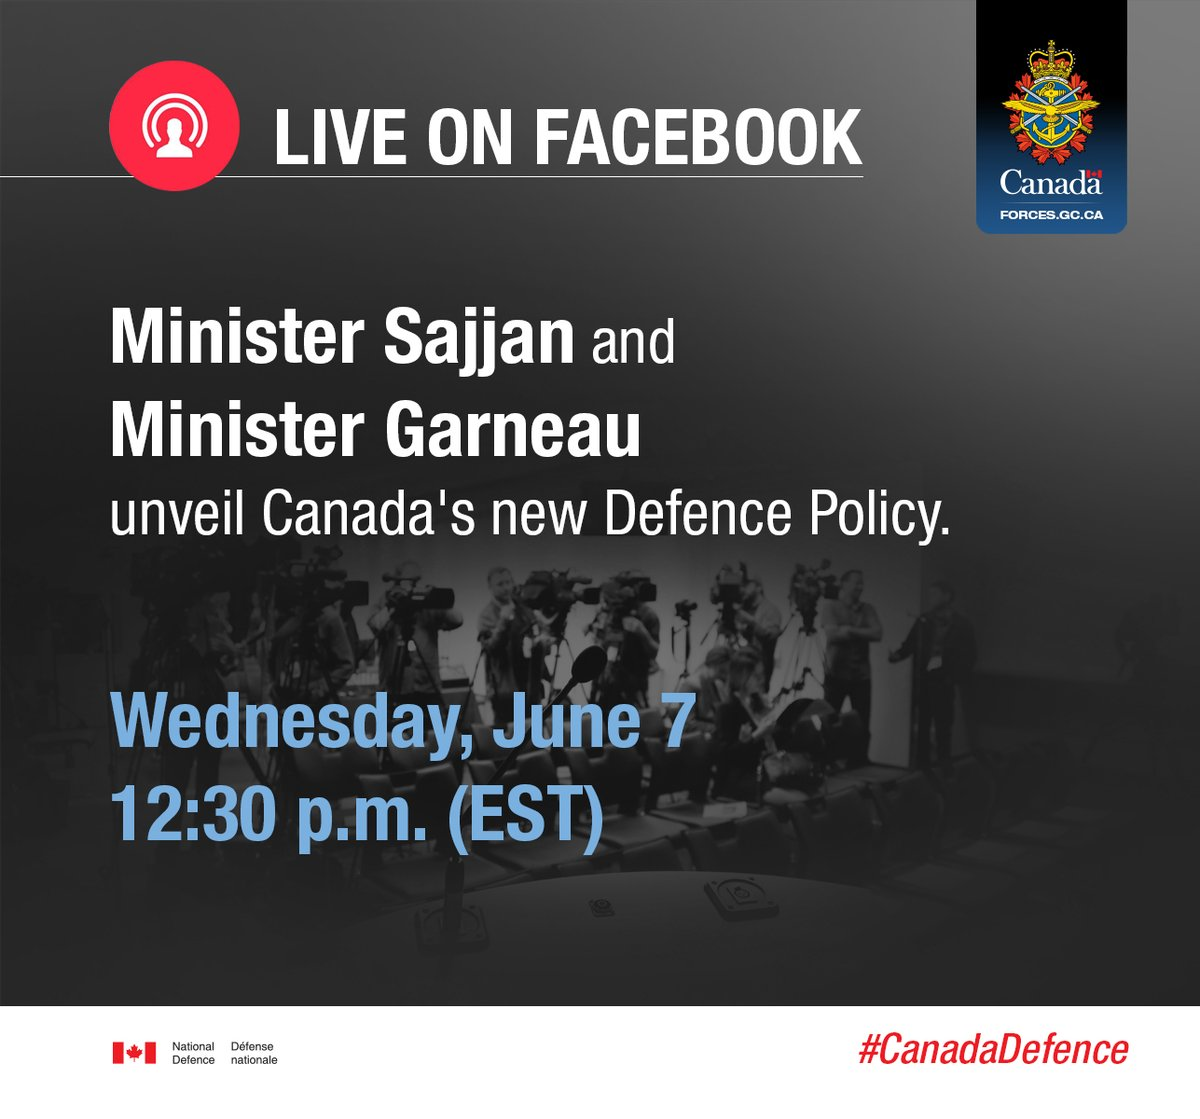 Today! Watch live on Facebook as we announce Canada's Defence Policy. #CanadaDefence https://t.co/0FrR3f9zGA https://t.co/huGW6cY0Y8